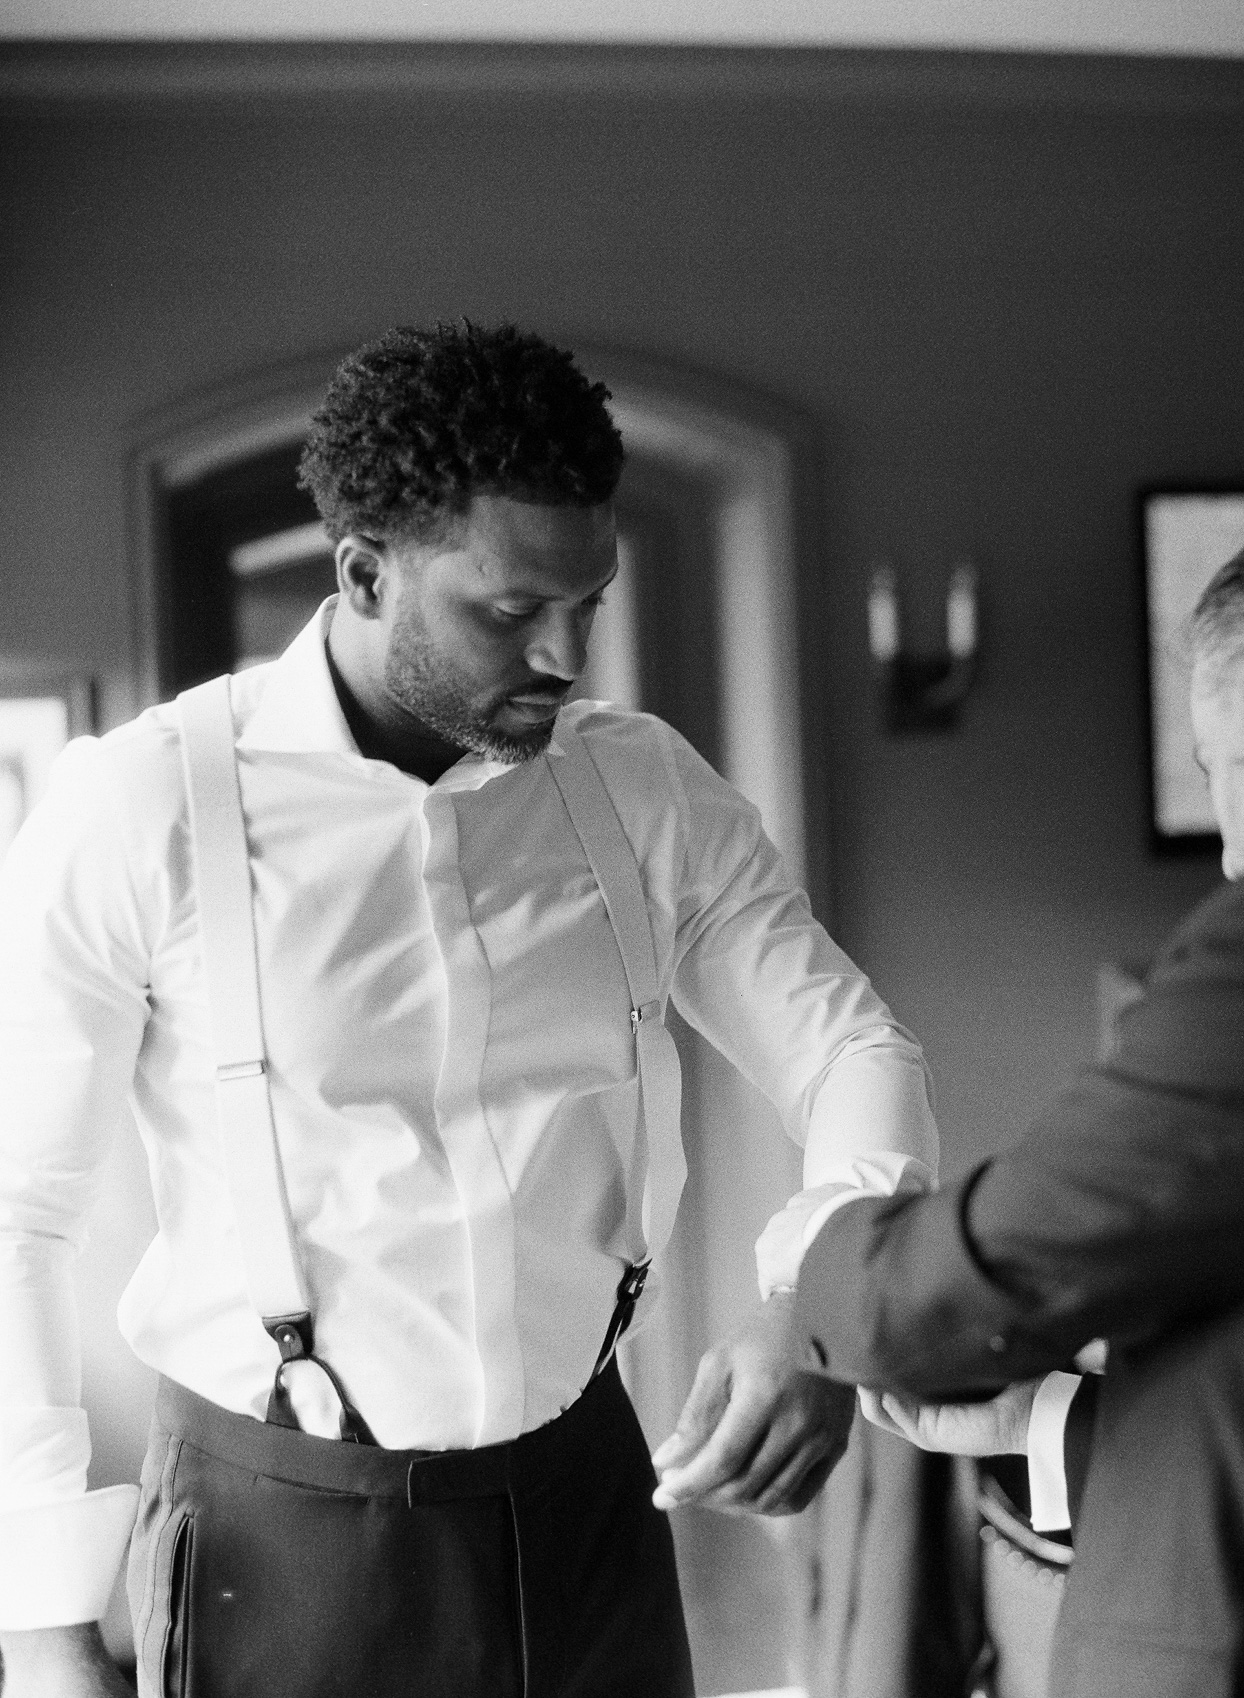 groom getting ready for ceremony